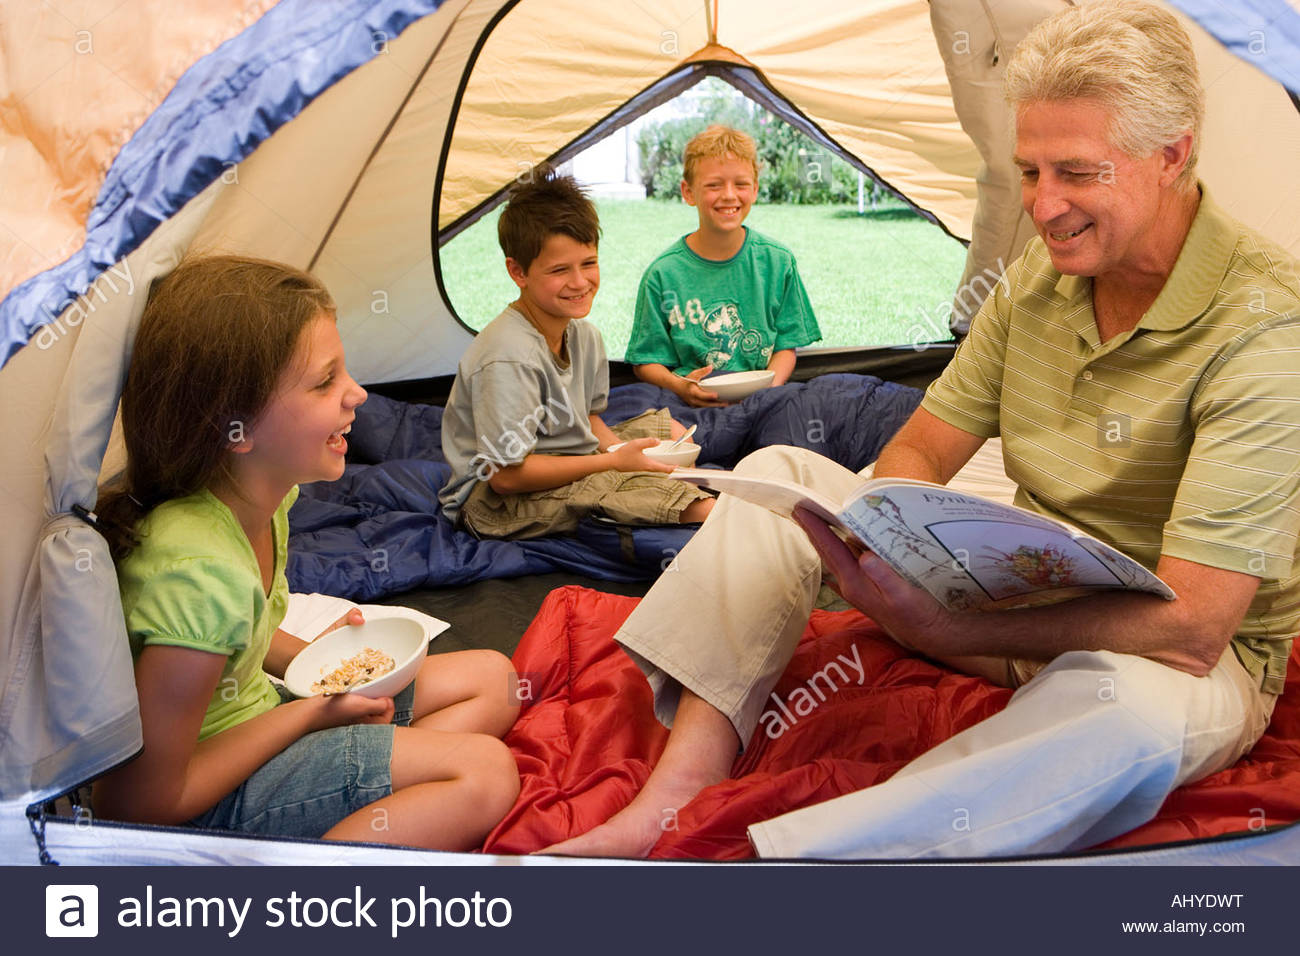 Family sitting inside tent on garden lawn children 8 10 eating breakfast grandfather reading magazine smiling  sc 1 st  Alamy & Family sitting inside tent on garden lawn children 8 10 eating ...